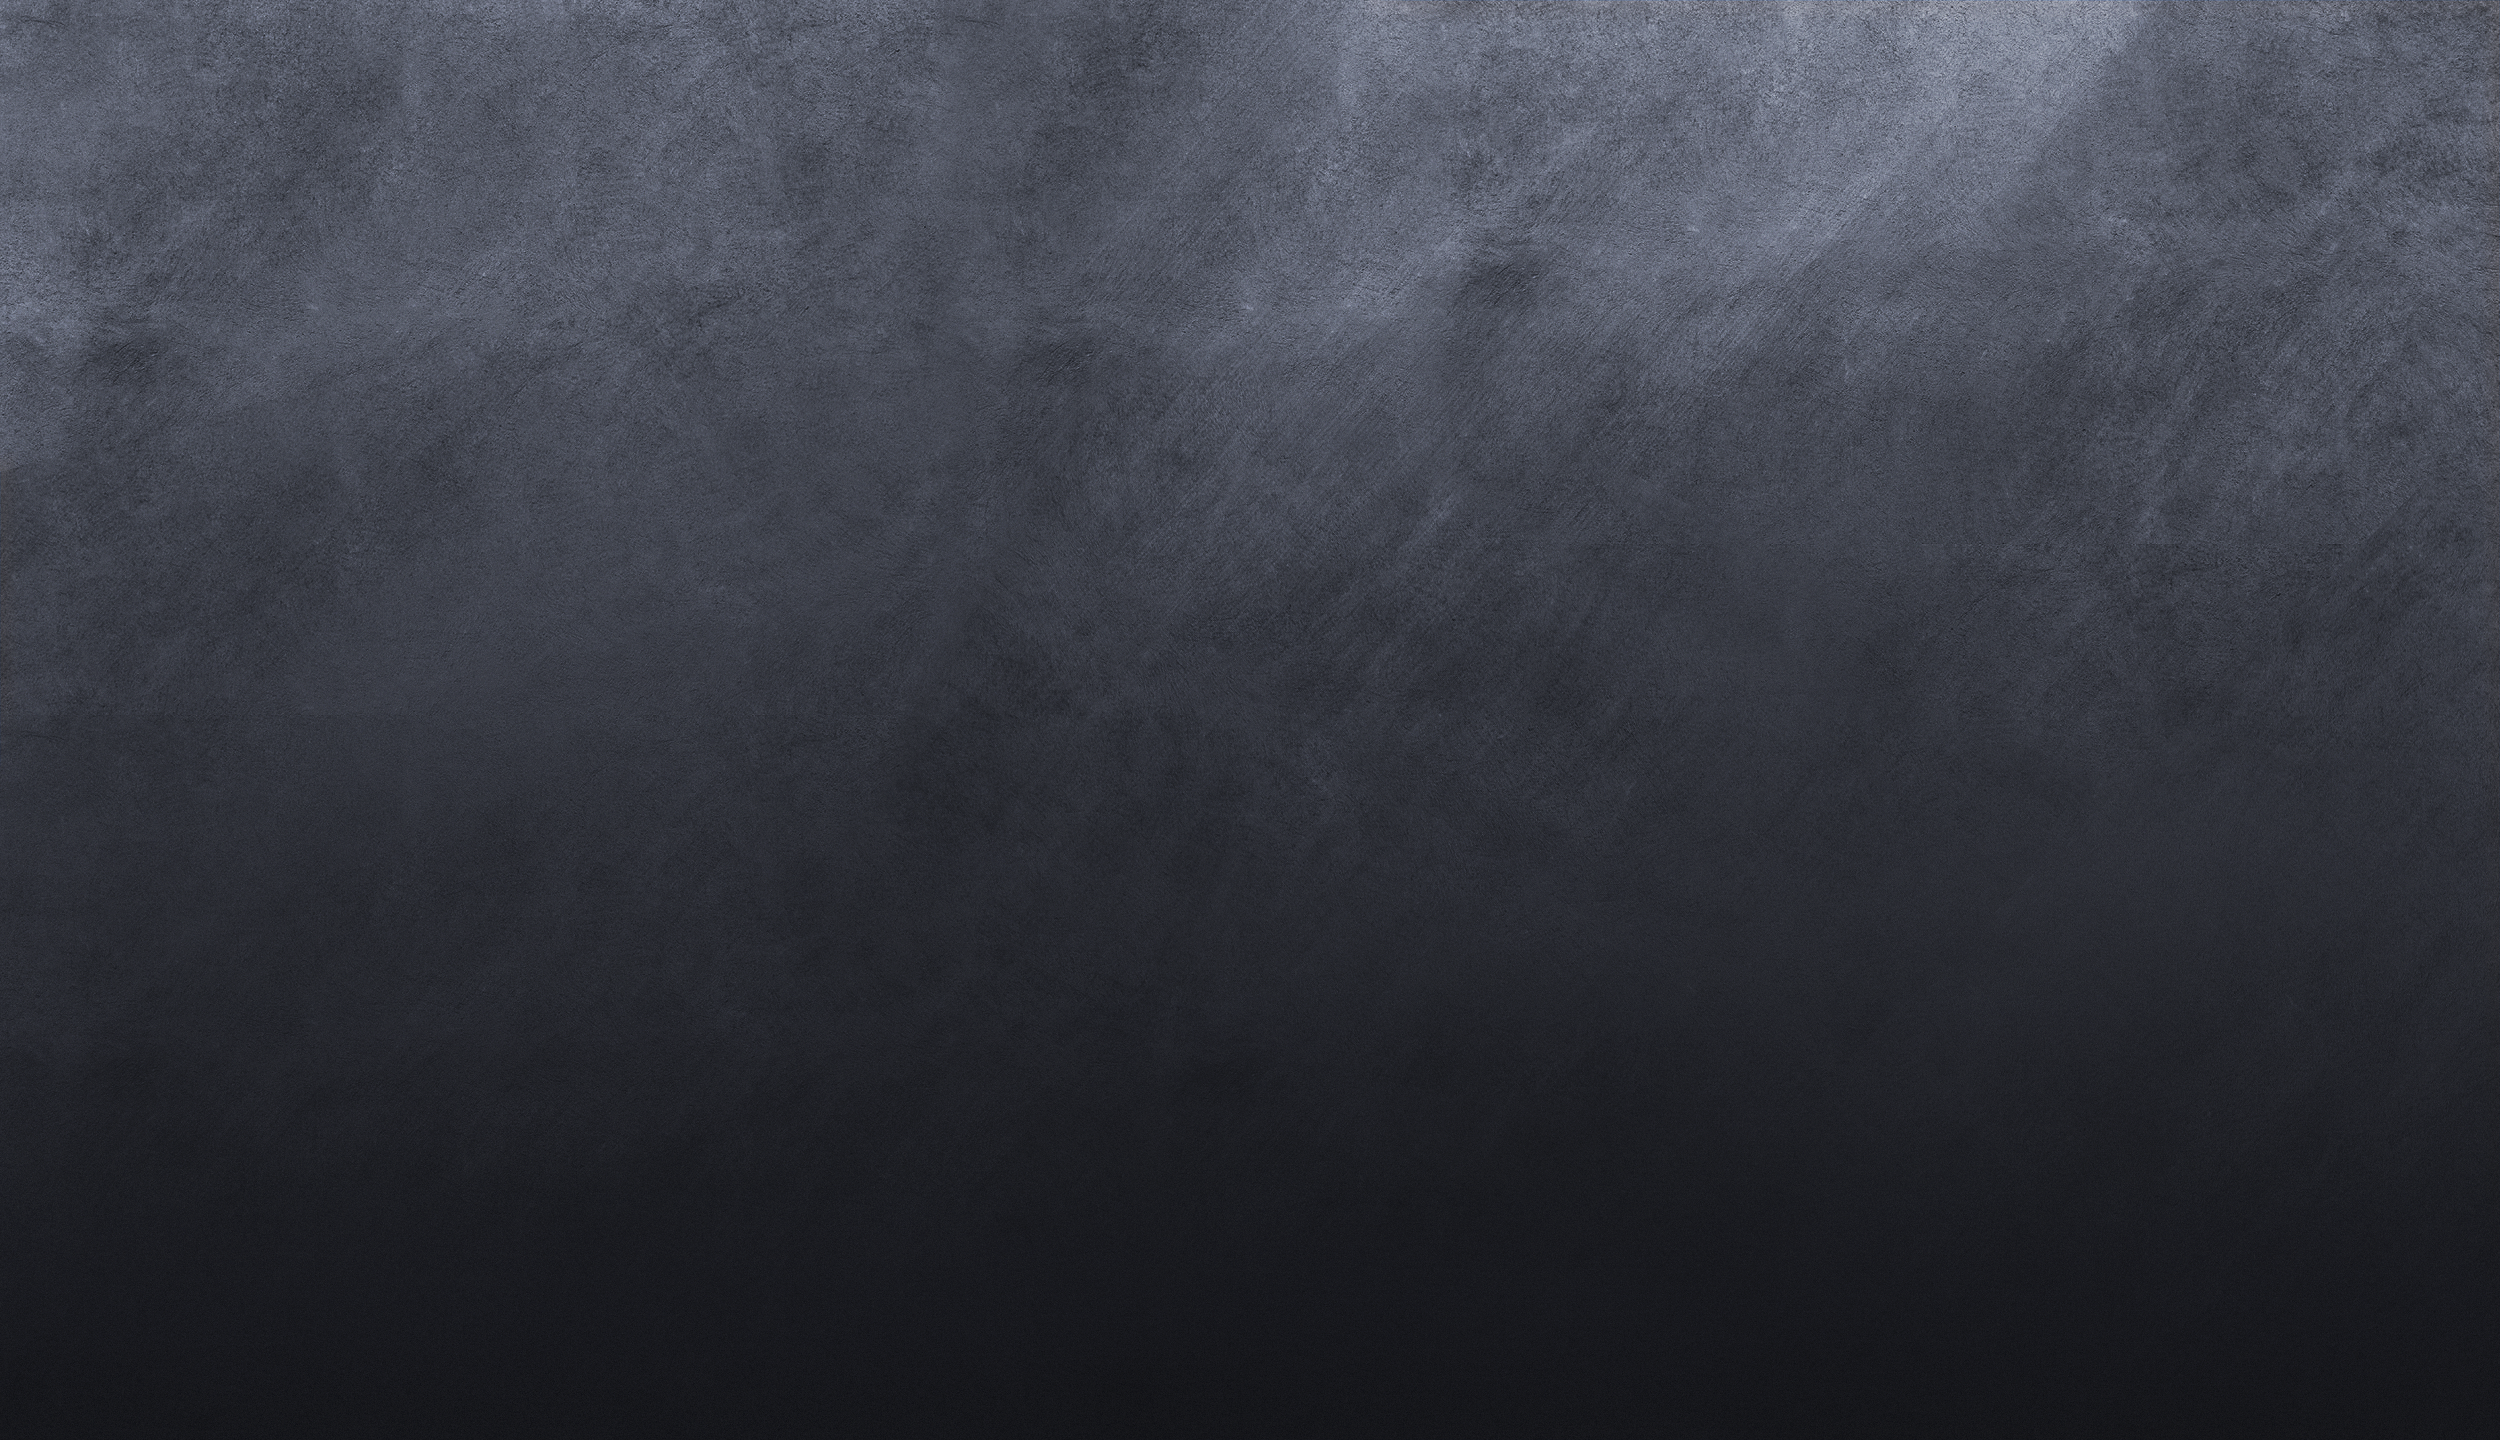 Mur Enduit, wallpapers, gray, gray, background, abstract, digital art